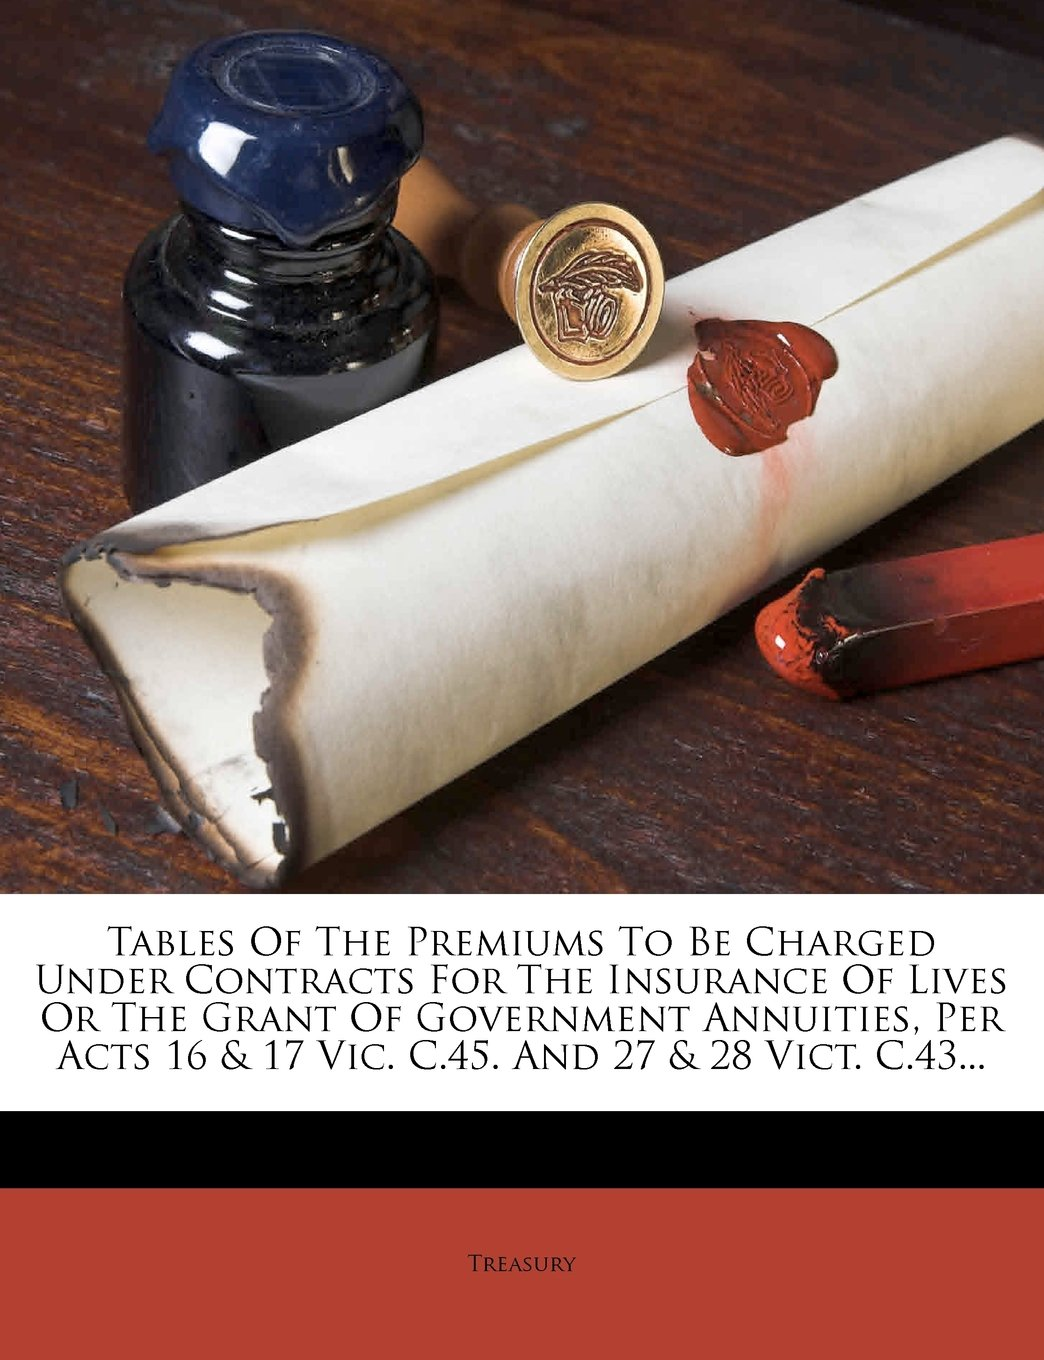 Download Tables Of The Premiums To Be Charged Under Contracts For The Insurance Of Lives Or The Grant Of Government Annuities, Per Acts 16 & 17 Vic. C.45. And 27 & 28 Vict. C.43... PDF